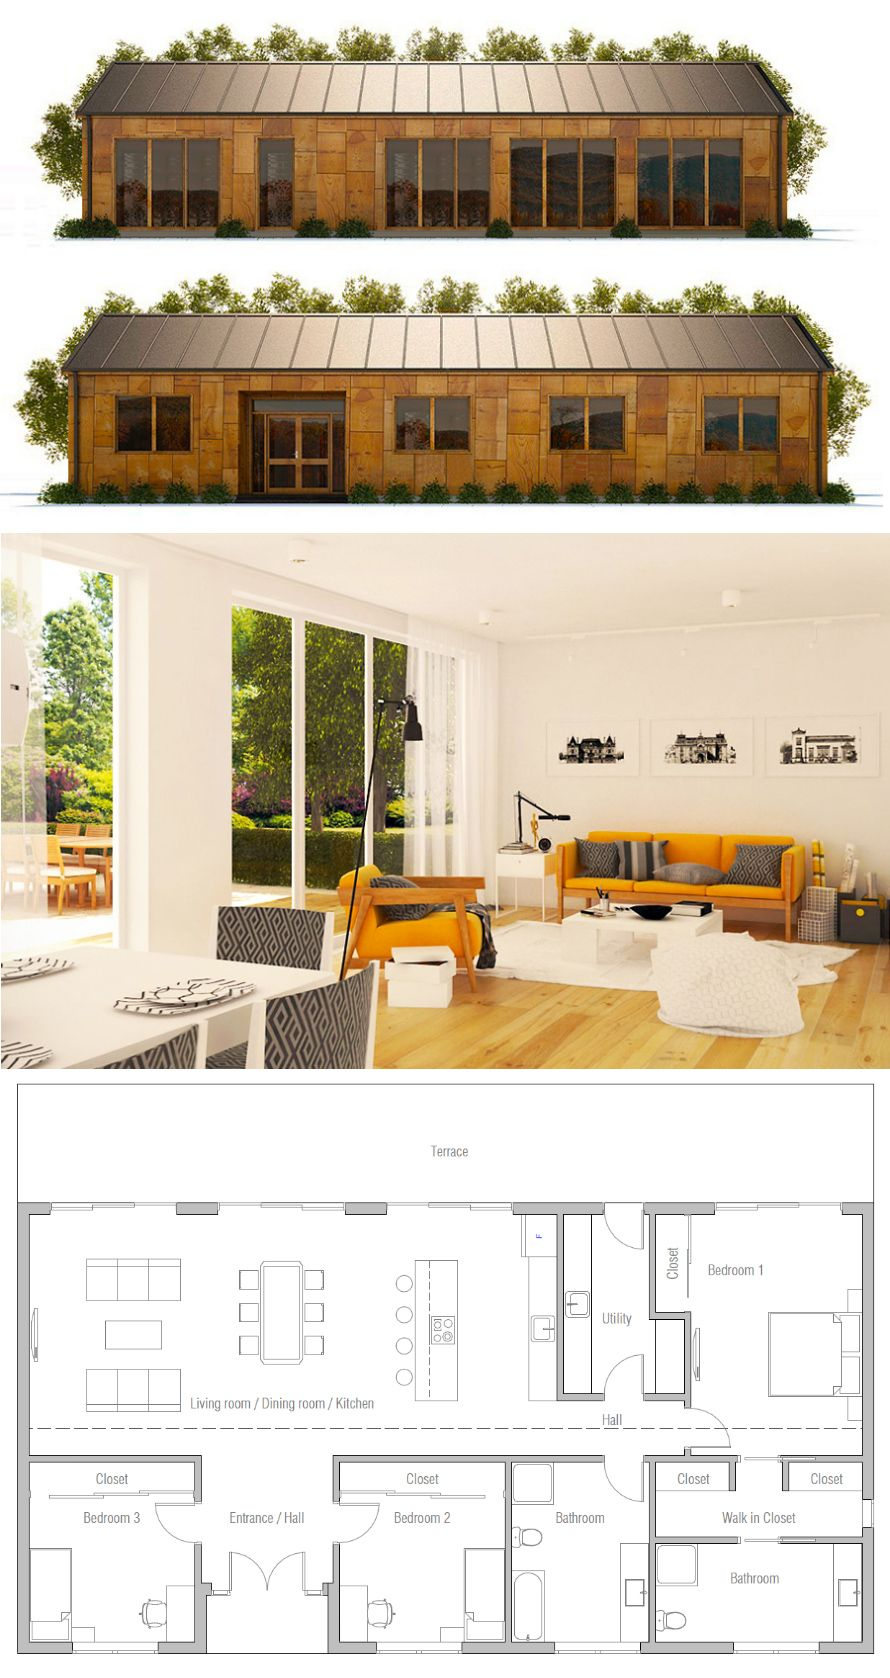 ^ 1000+ images about Haus on Pinterest House plans, Vaulted ...